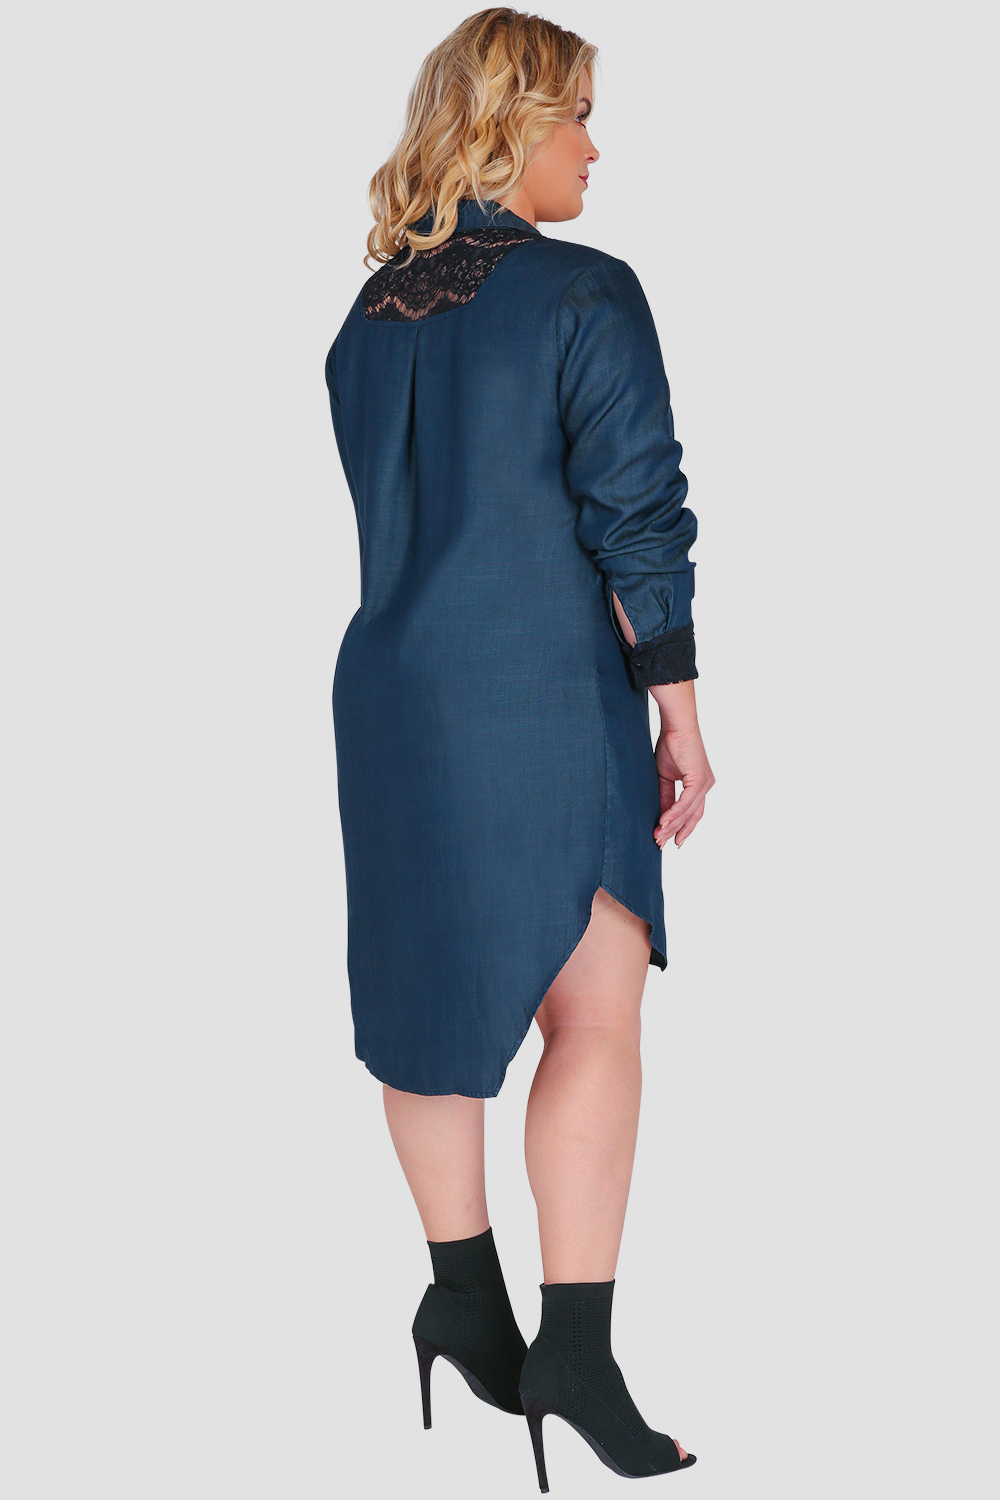 Standards & Practices Plus Size Women's Long-Sleeved Collared Denim Shirt Dress